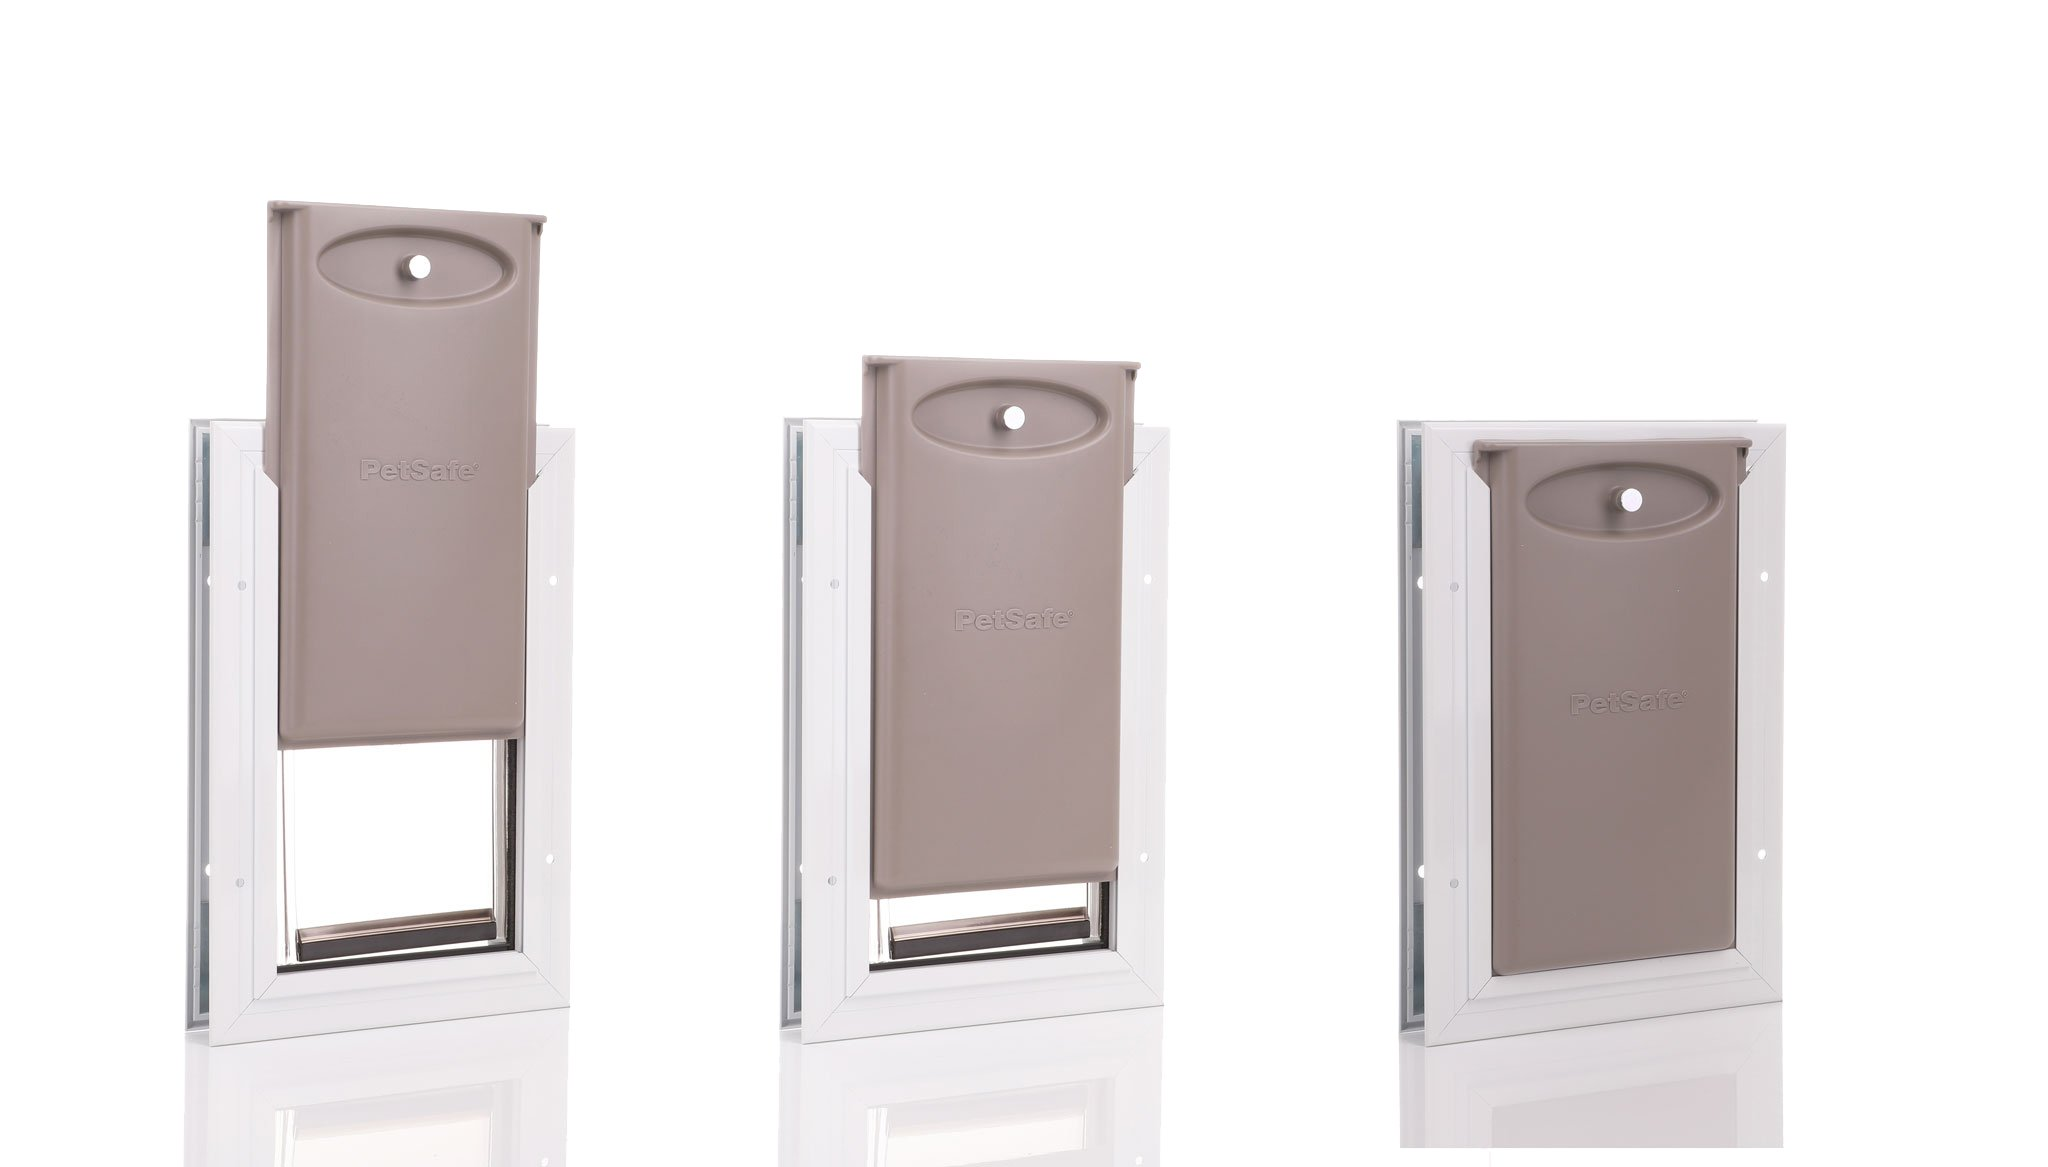 Internal panel for locking the small dog door from PetSafe